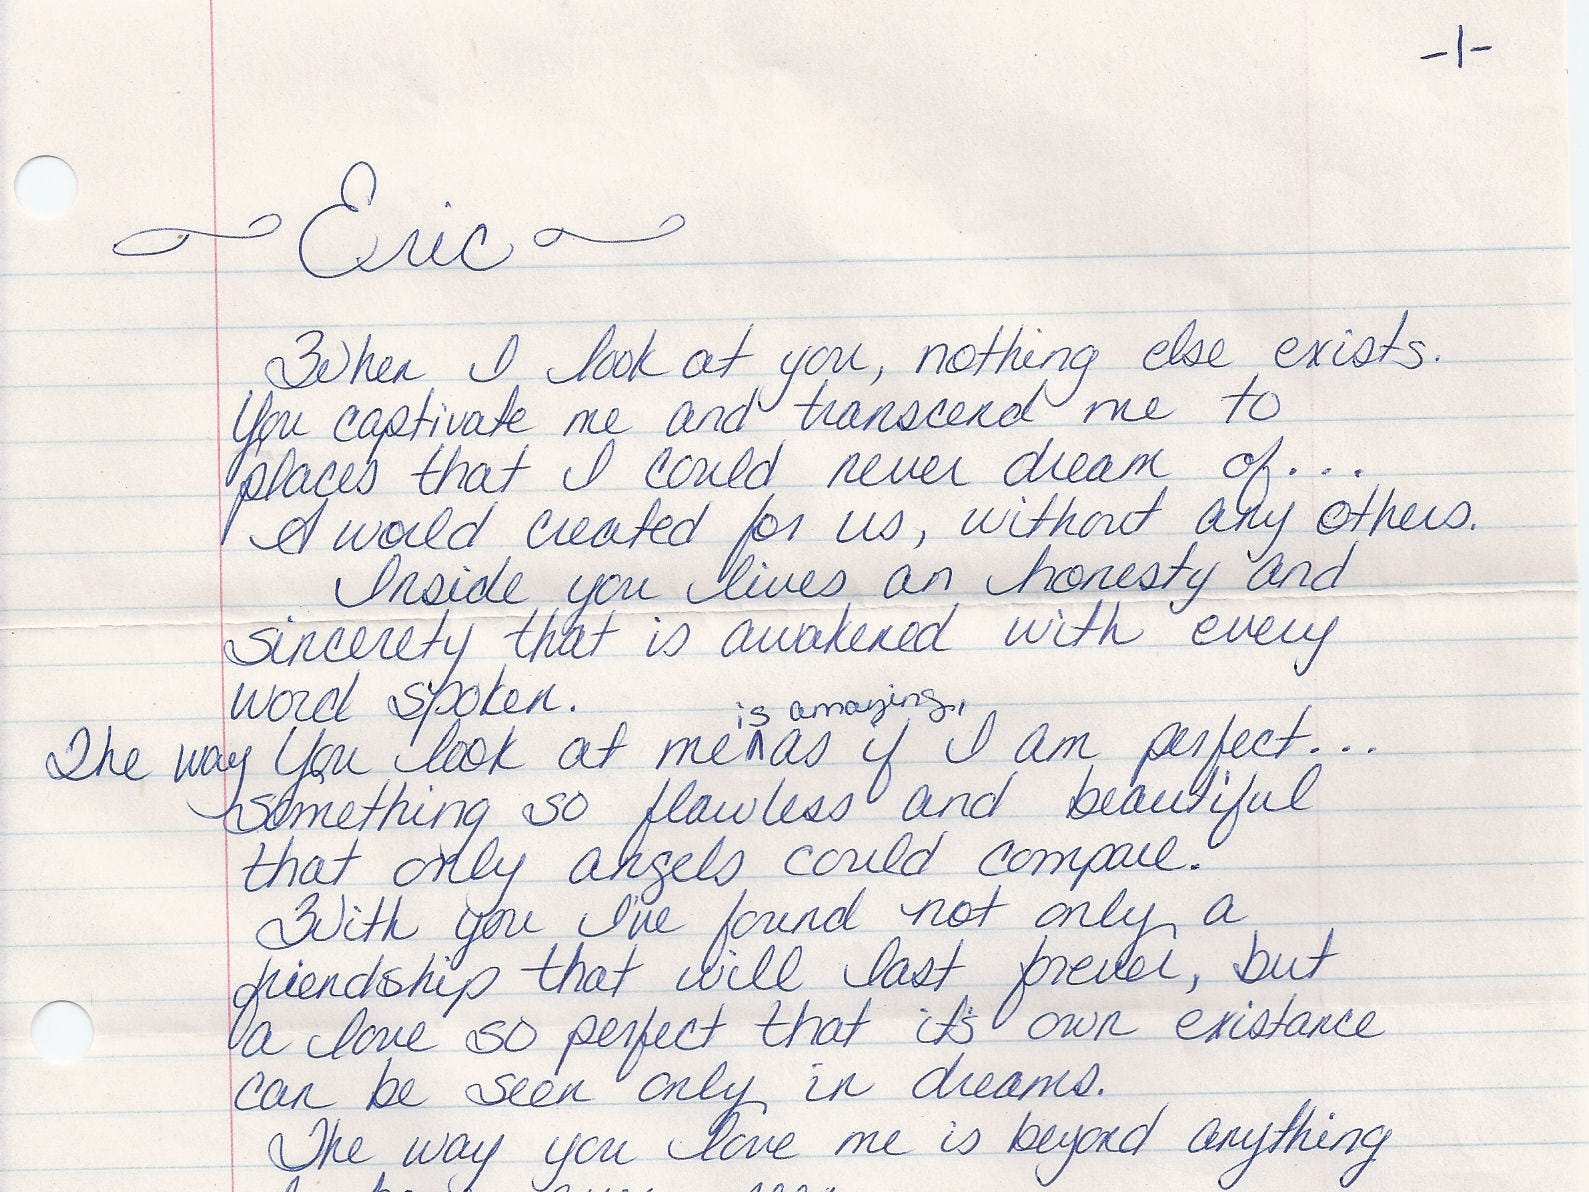 A handwritten letter by Christa Gail Pike that is for sale on the website Serial Killers Ink. The website sells materials provided by those who are incarcerated. Pike, who was sentenced to death for the 1995 torture slaying of Colleen Slemmer, a fellow Knoxville Job Corps student, has several items for sale on the website. (serialkillersink.net)